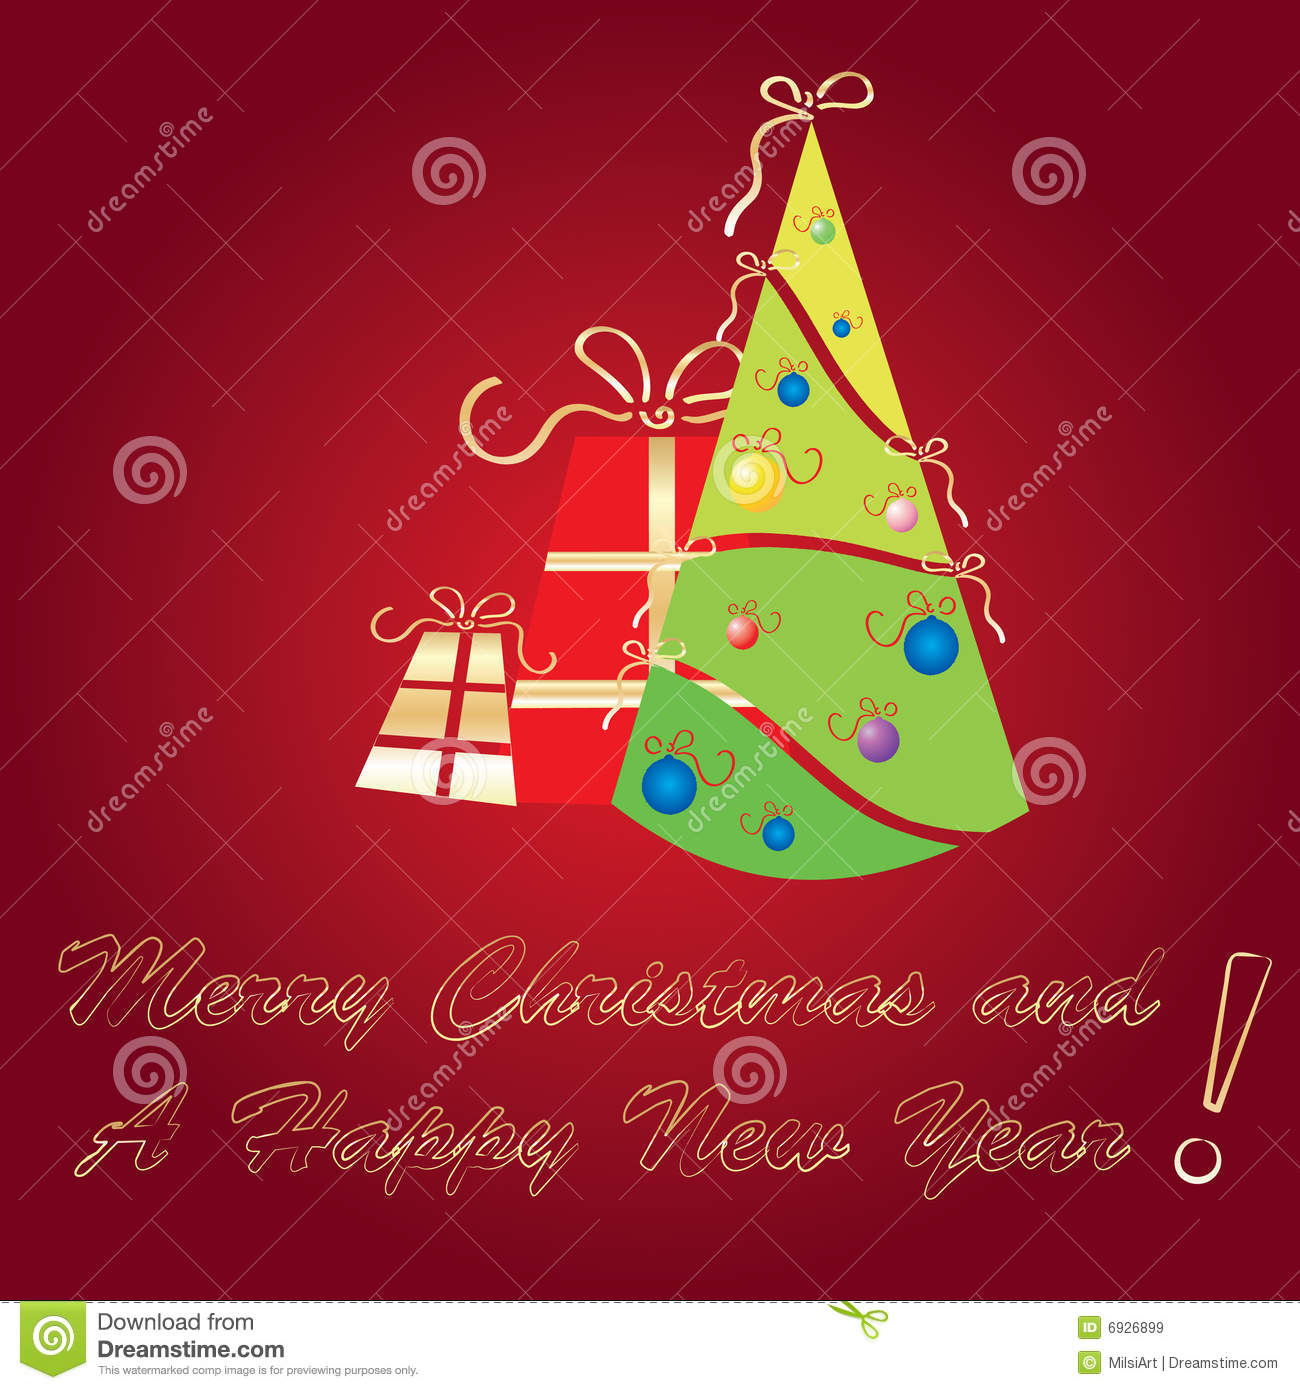 Displaying 18u0026gt; Images For - Seasons Greetings Cards Templates...